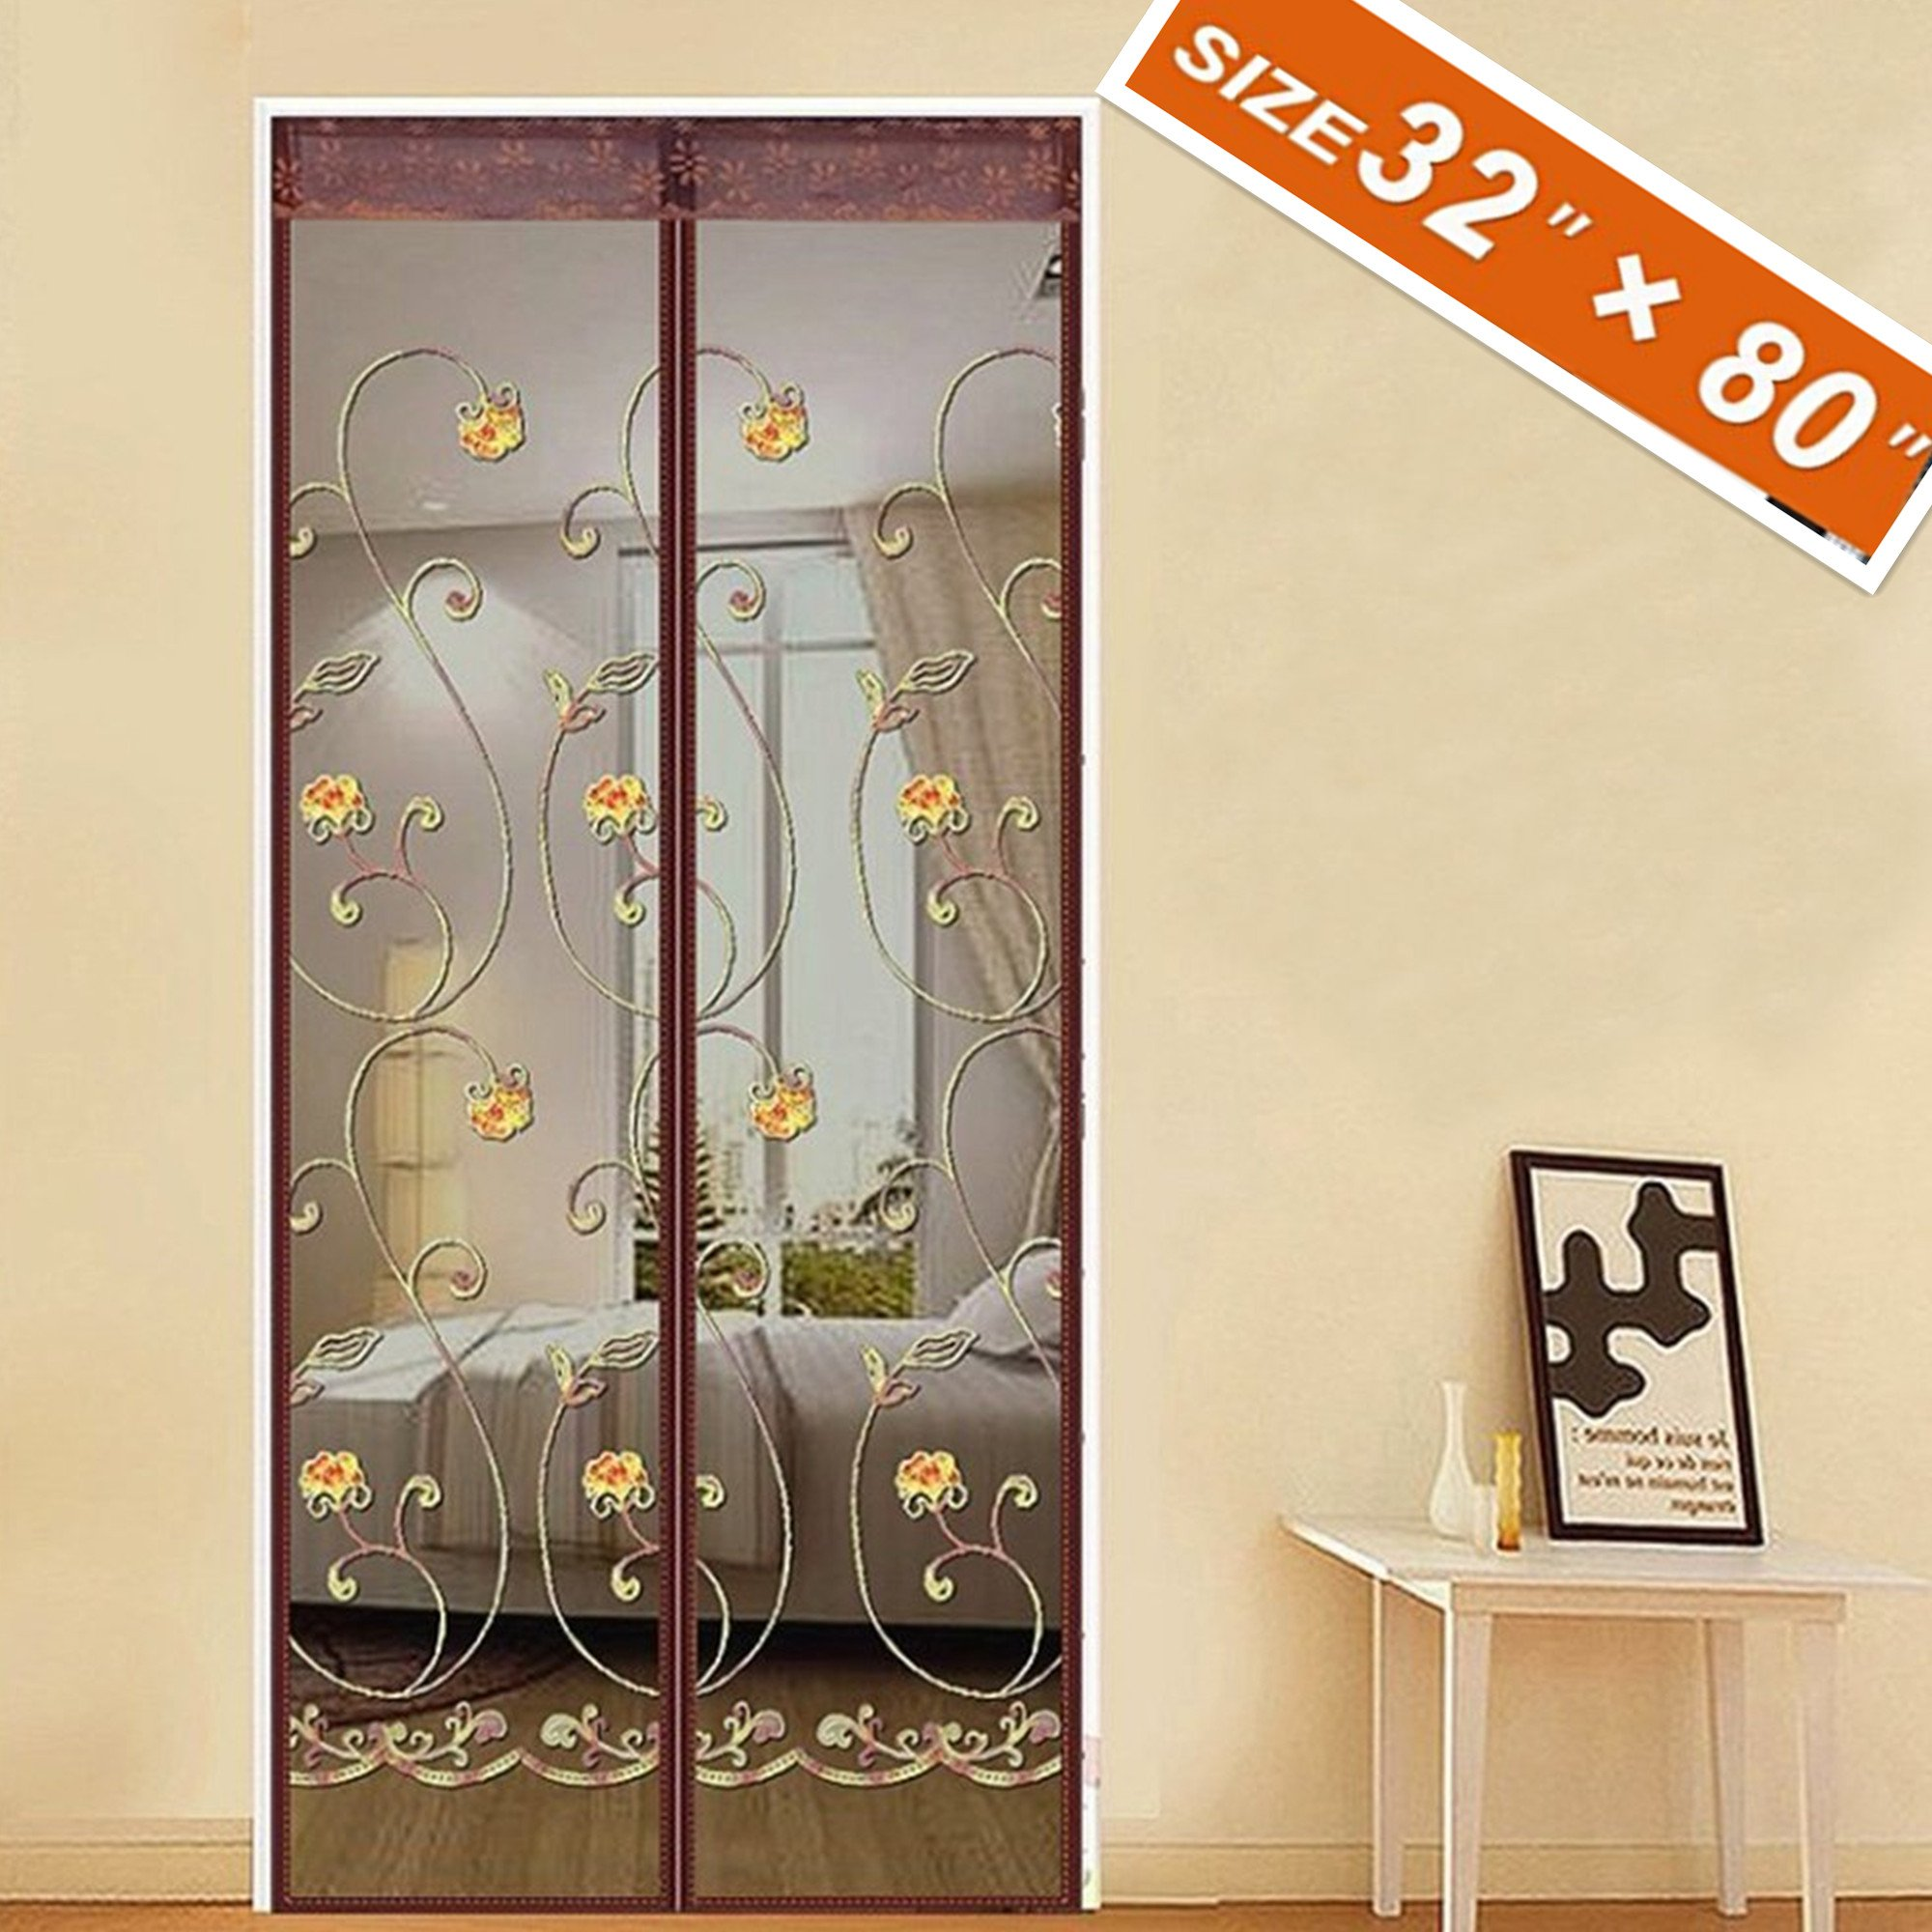 Spritech Embroider Flower Style Screen Door,French Door Magnets 32 X 80 Fit Doors Size Up to 30'' W X 79'' H Max with Full Frame Velcro Exterior Back Screen Door Keep Fly Mosquito Bug Out